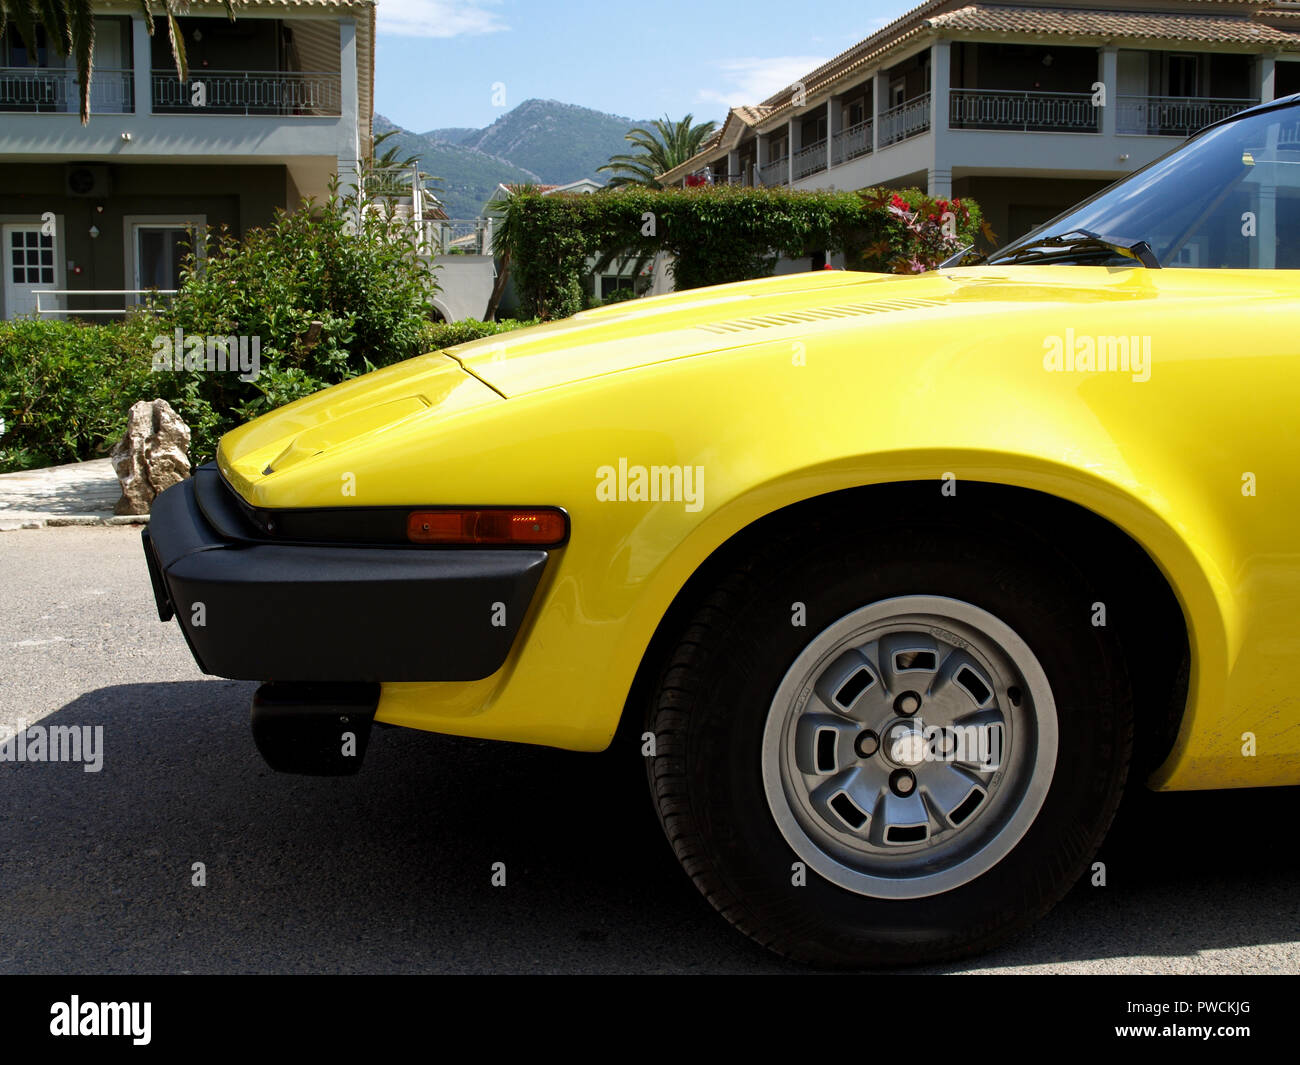 Vintage Triumph TR7 on display at the 8th Hellenic Bulgarian LEKAM classic car rally at the Acharavi Park Hotel, Acharavi, Corfu, Greece - Stock Image